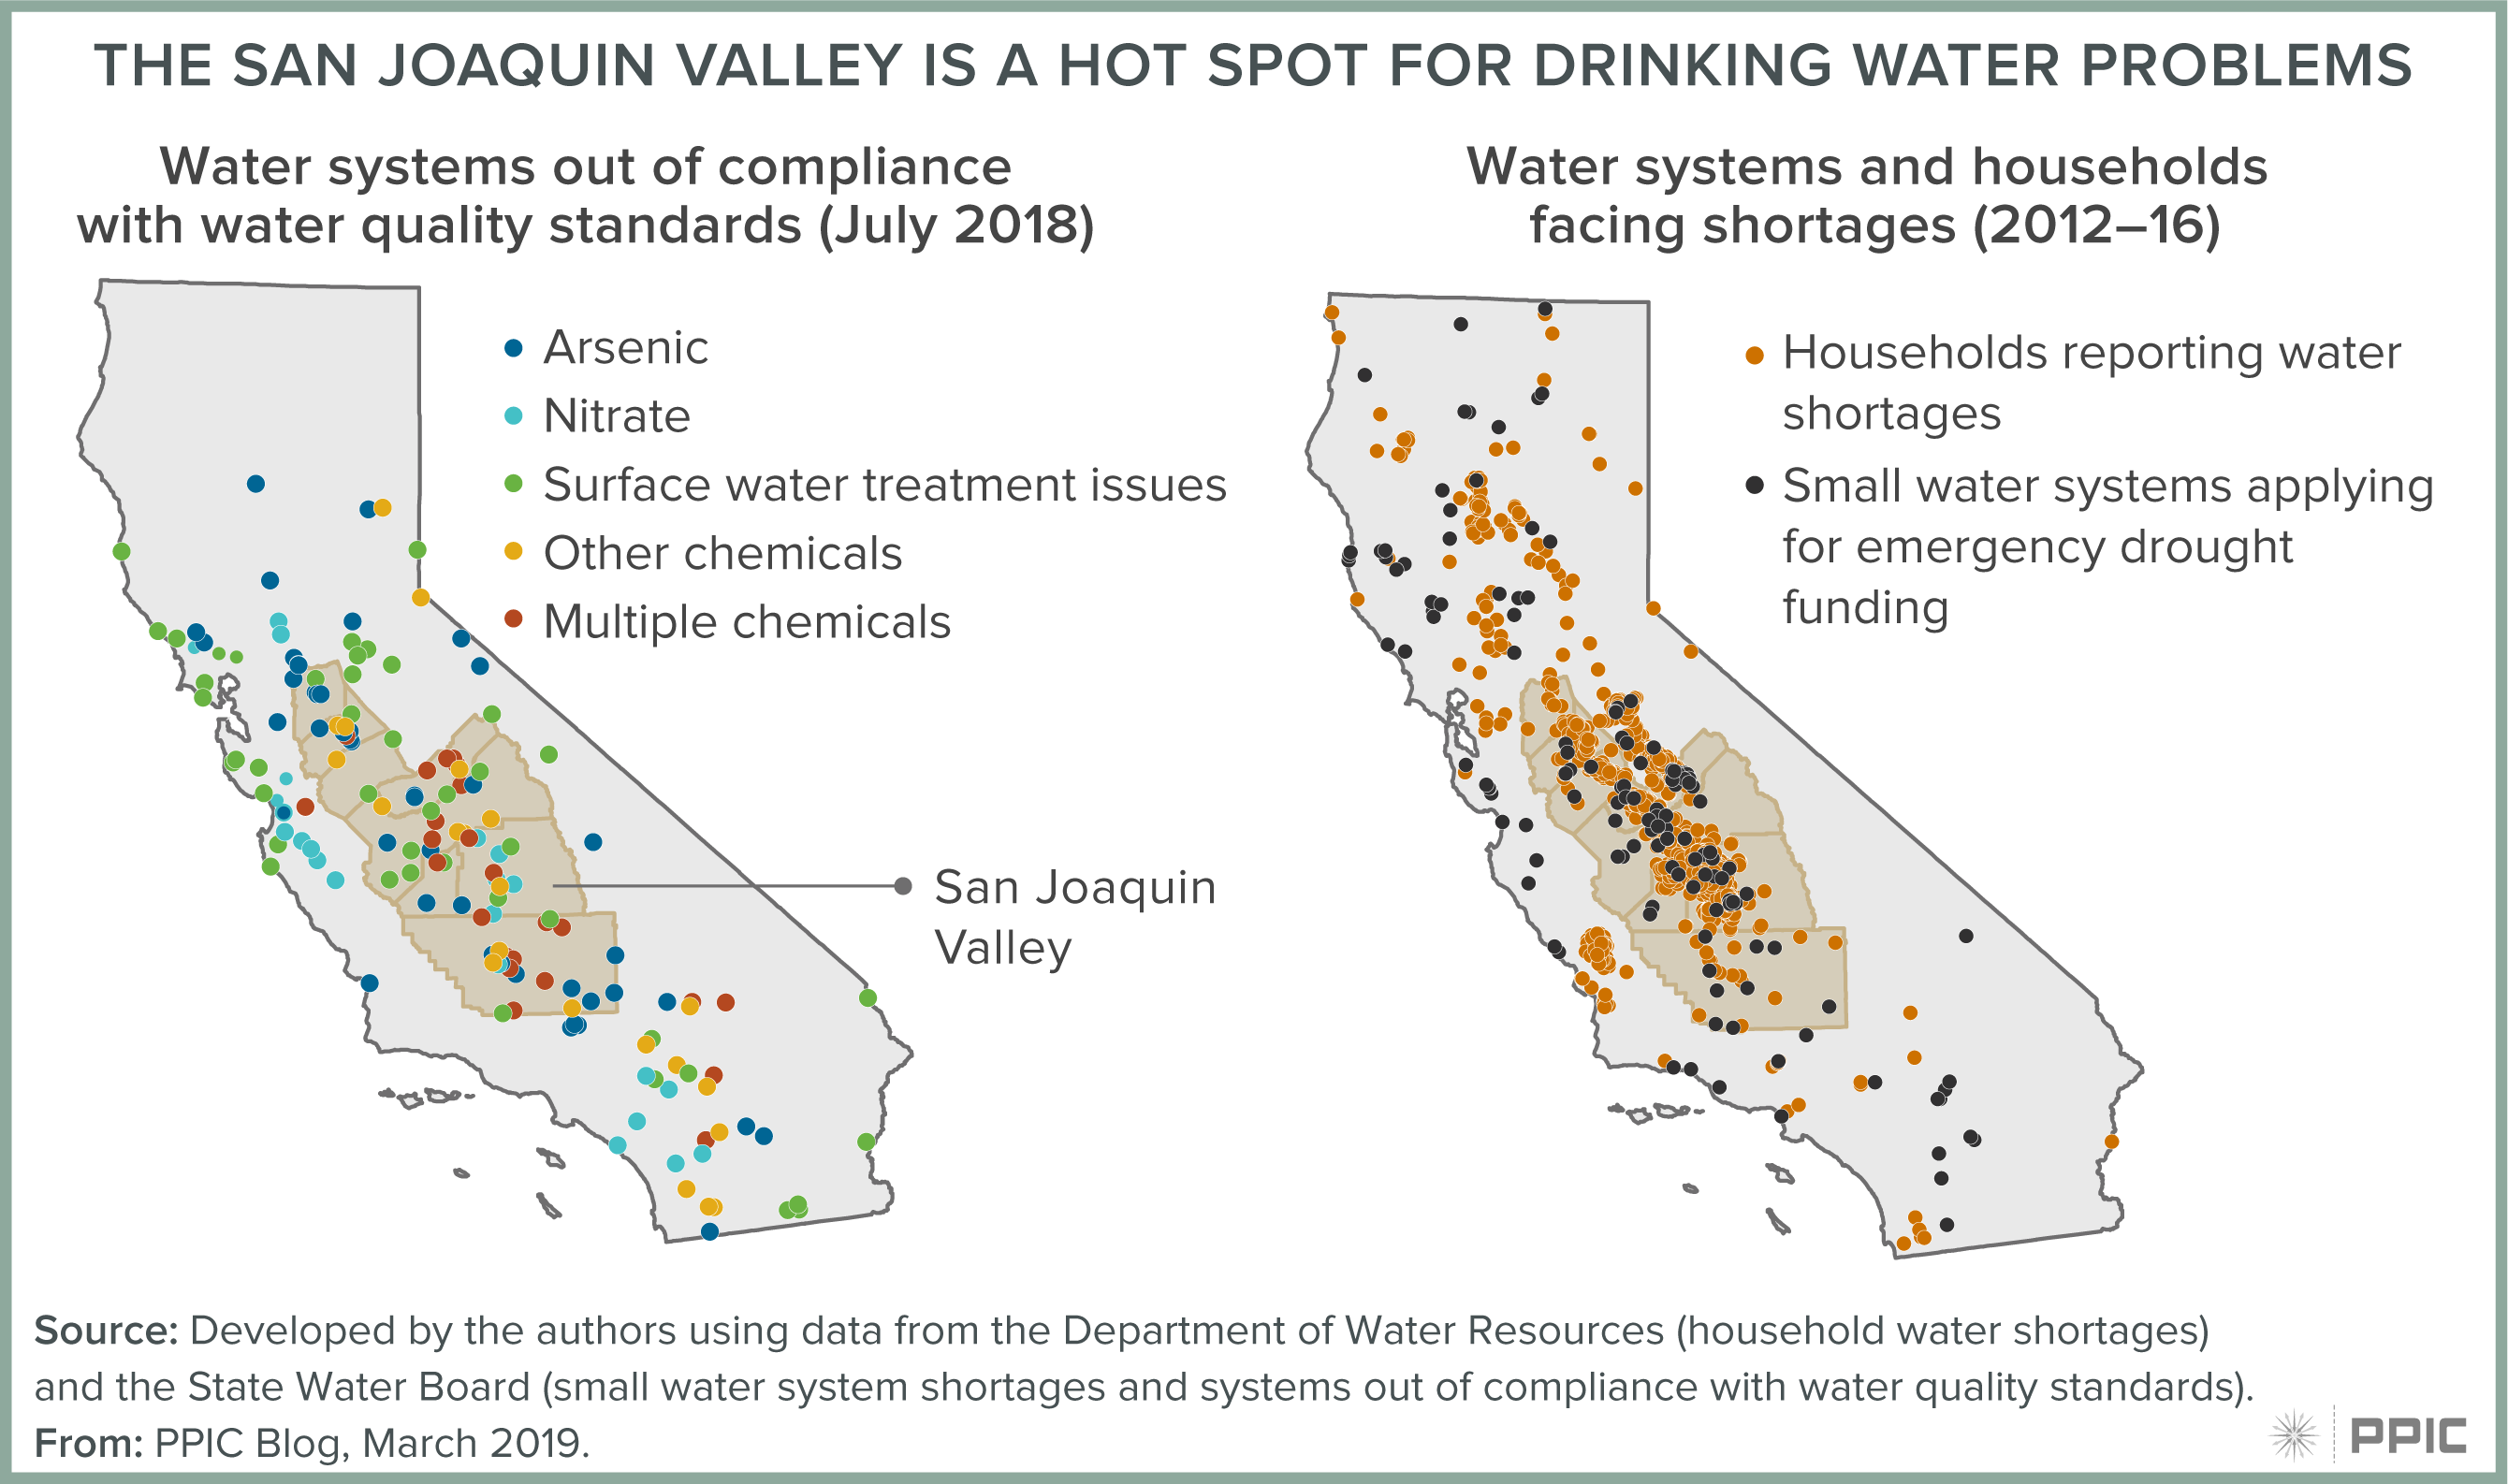 figure - The San Joaquin Valley Is a Hot Spot for Drinking Water Problems